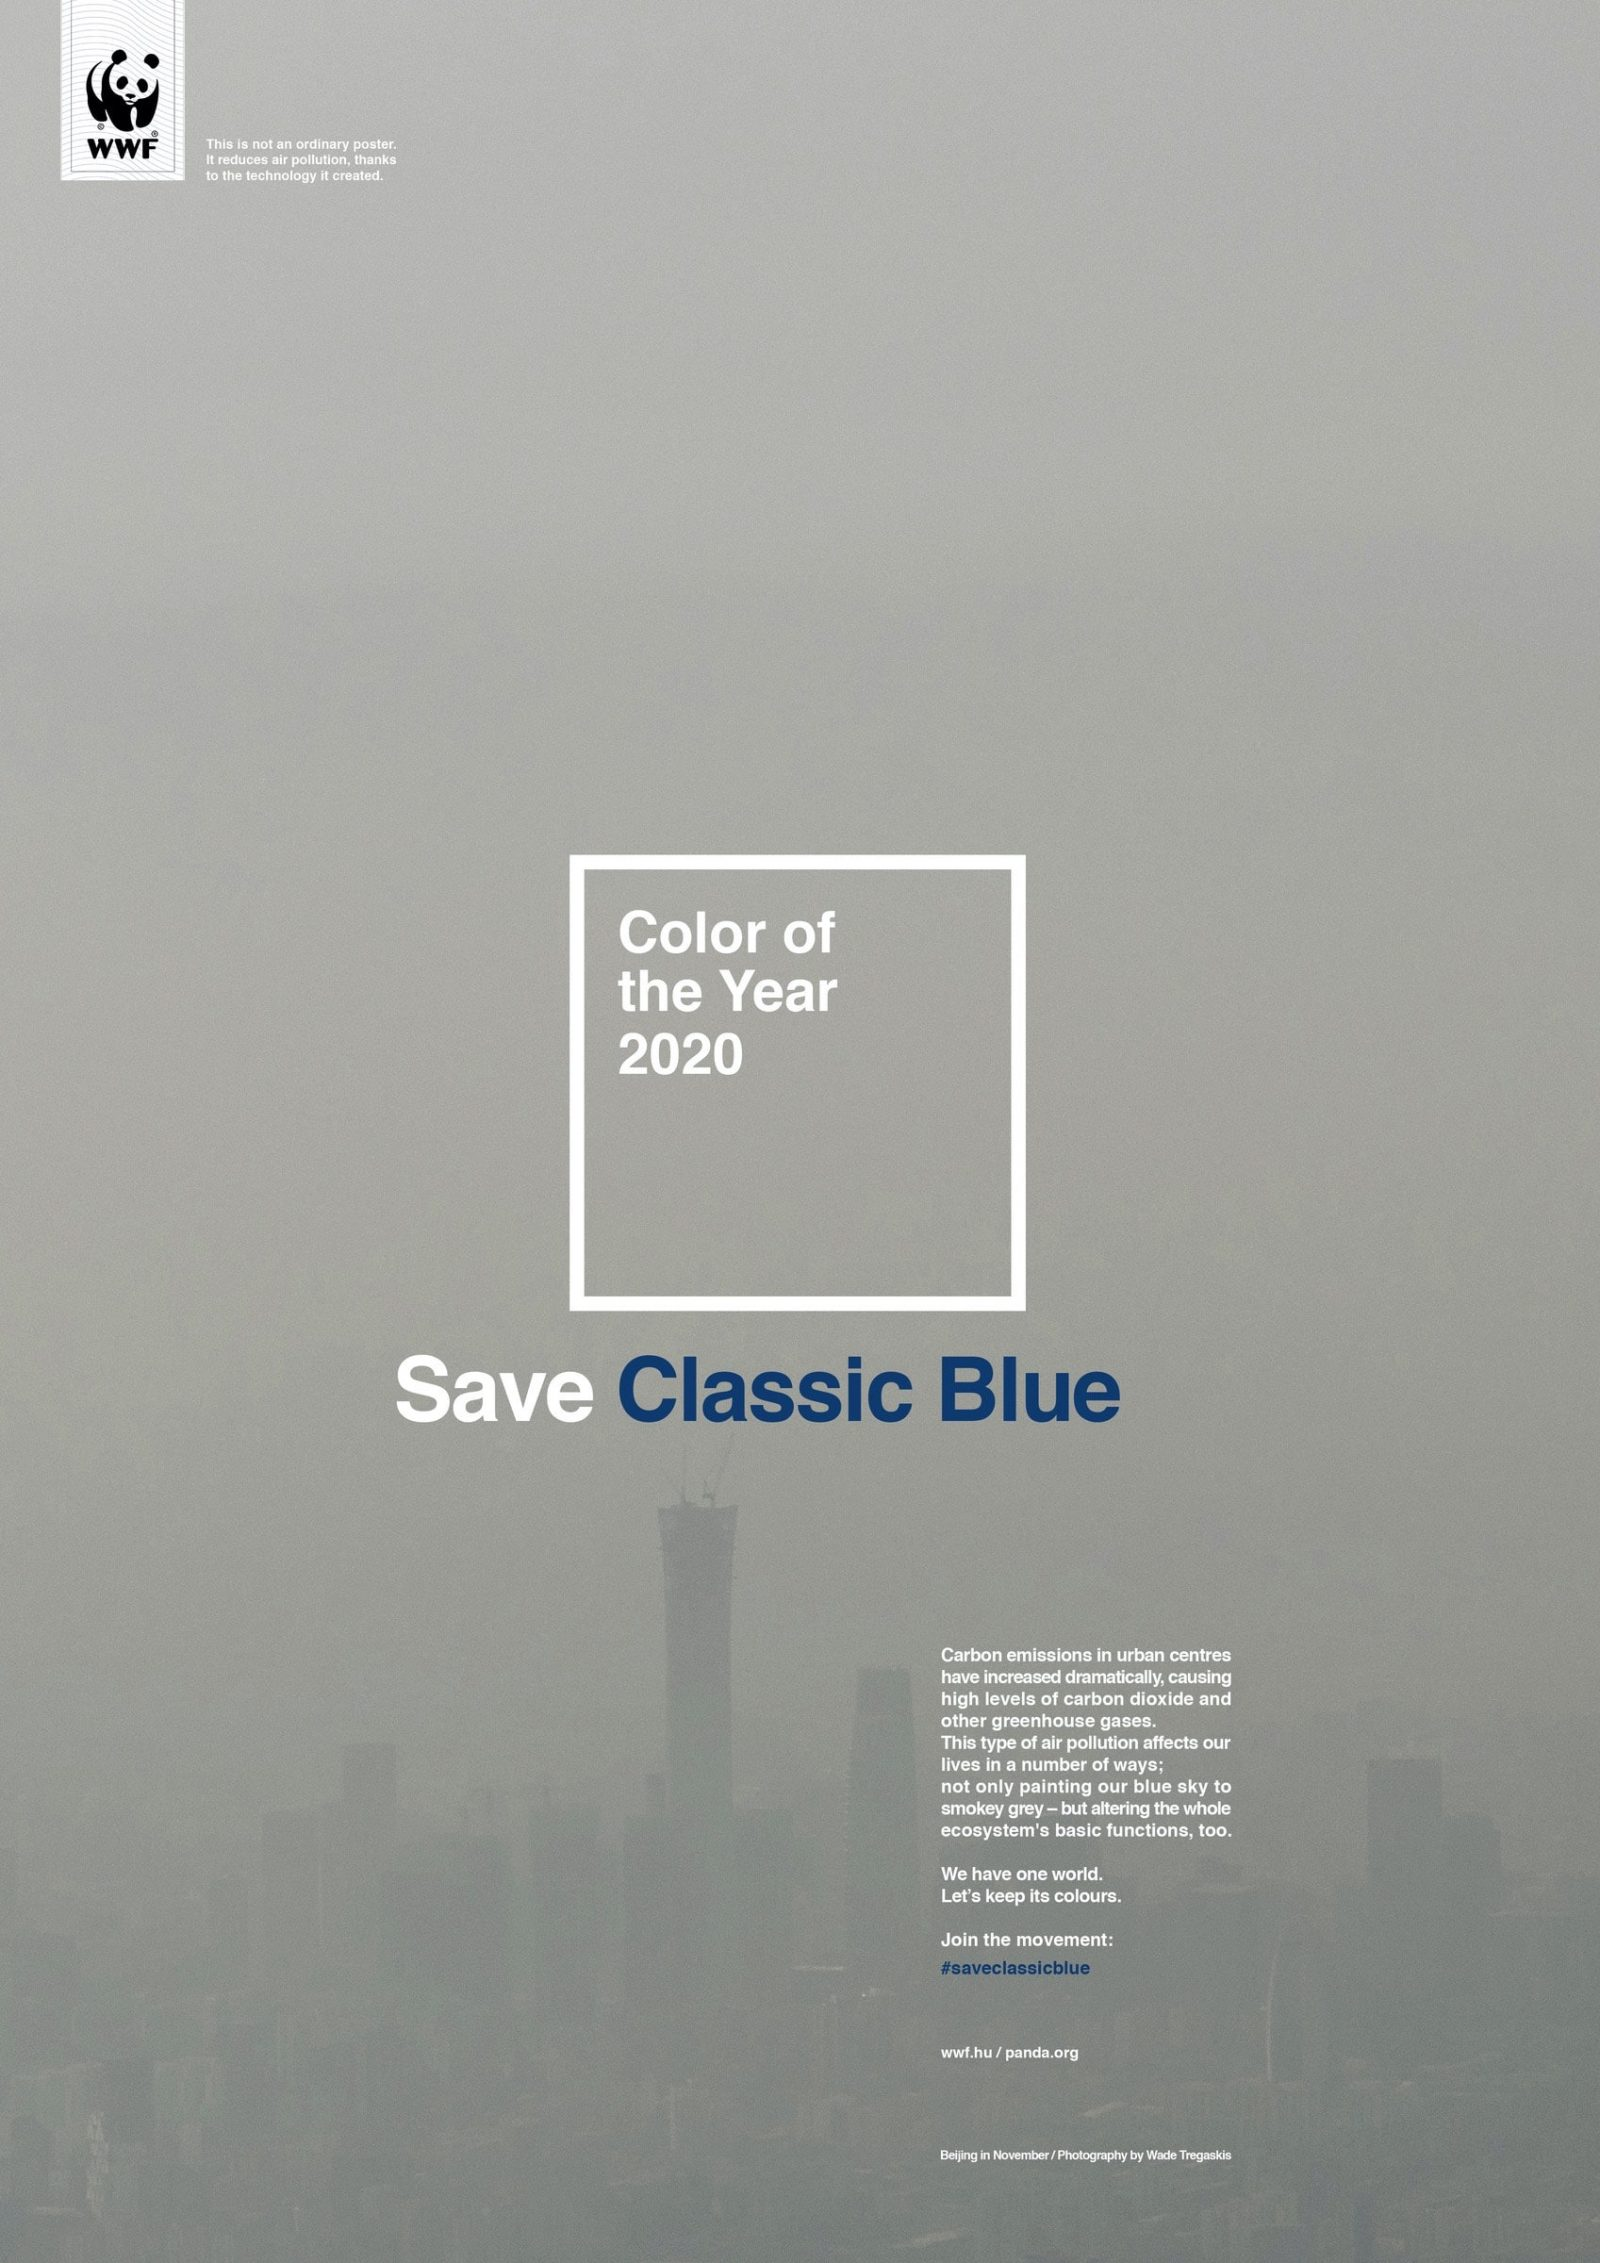 Save Classic Blue